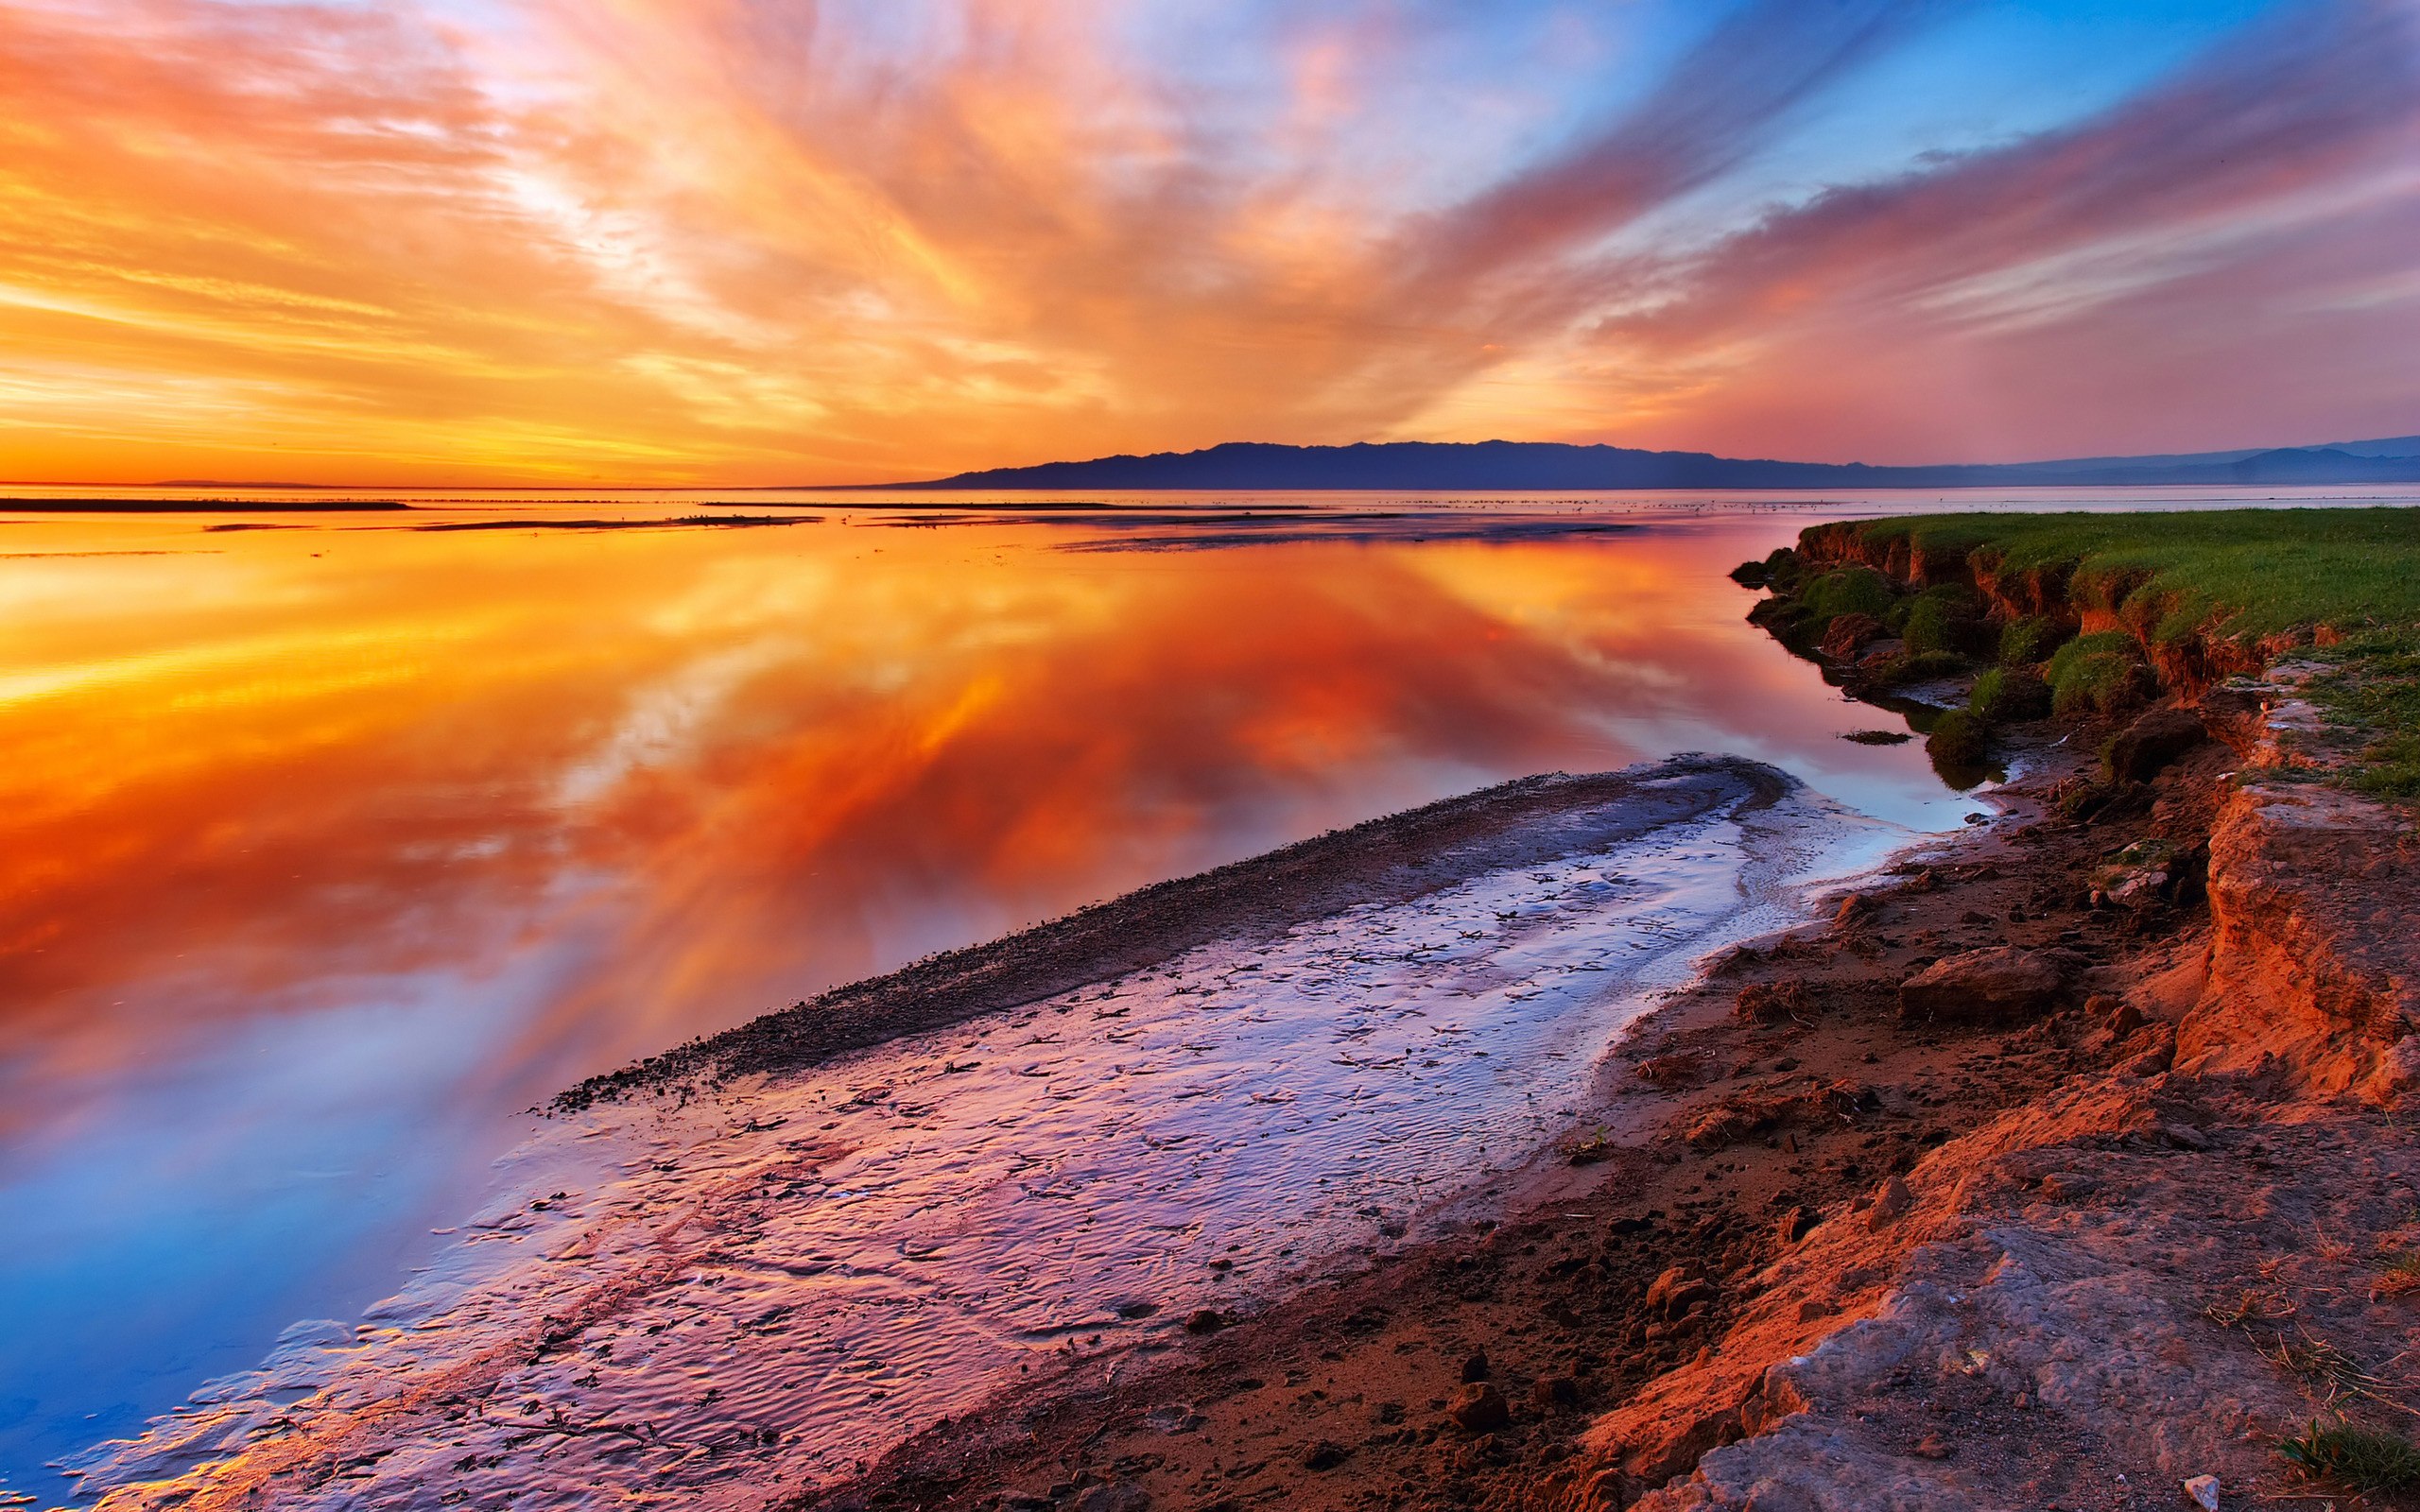 Sunset over the quiet surface of water